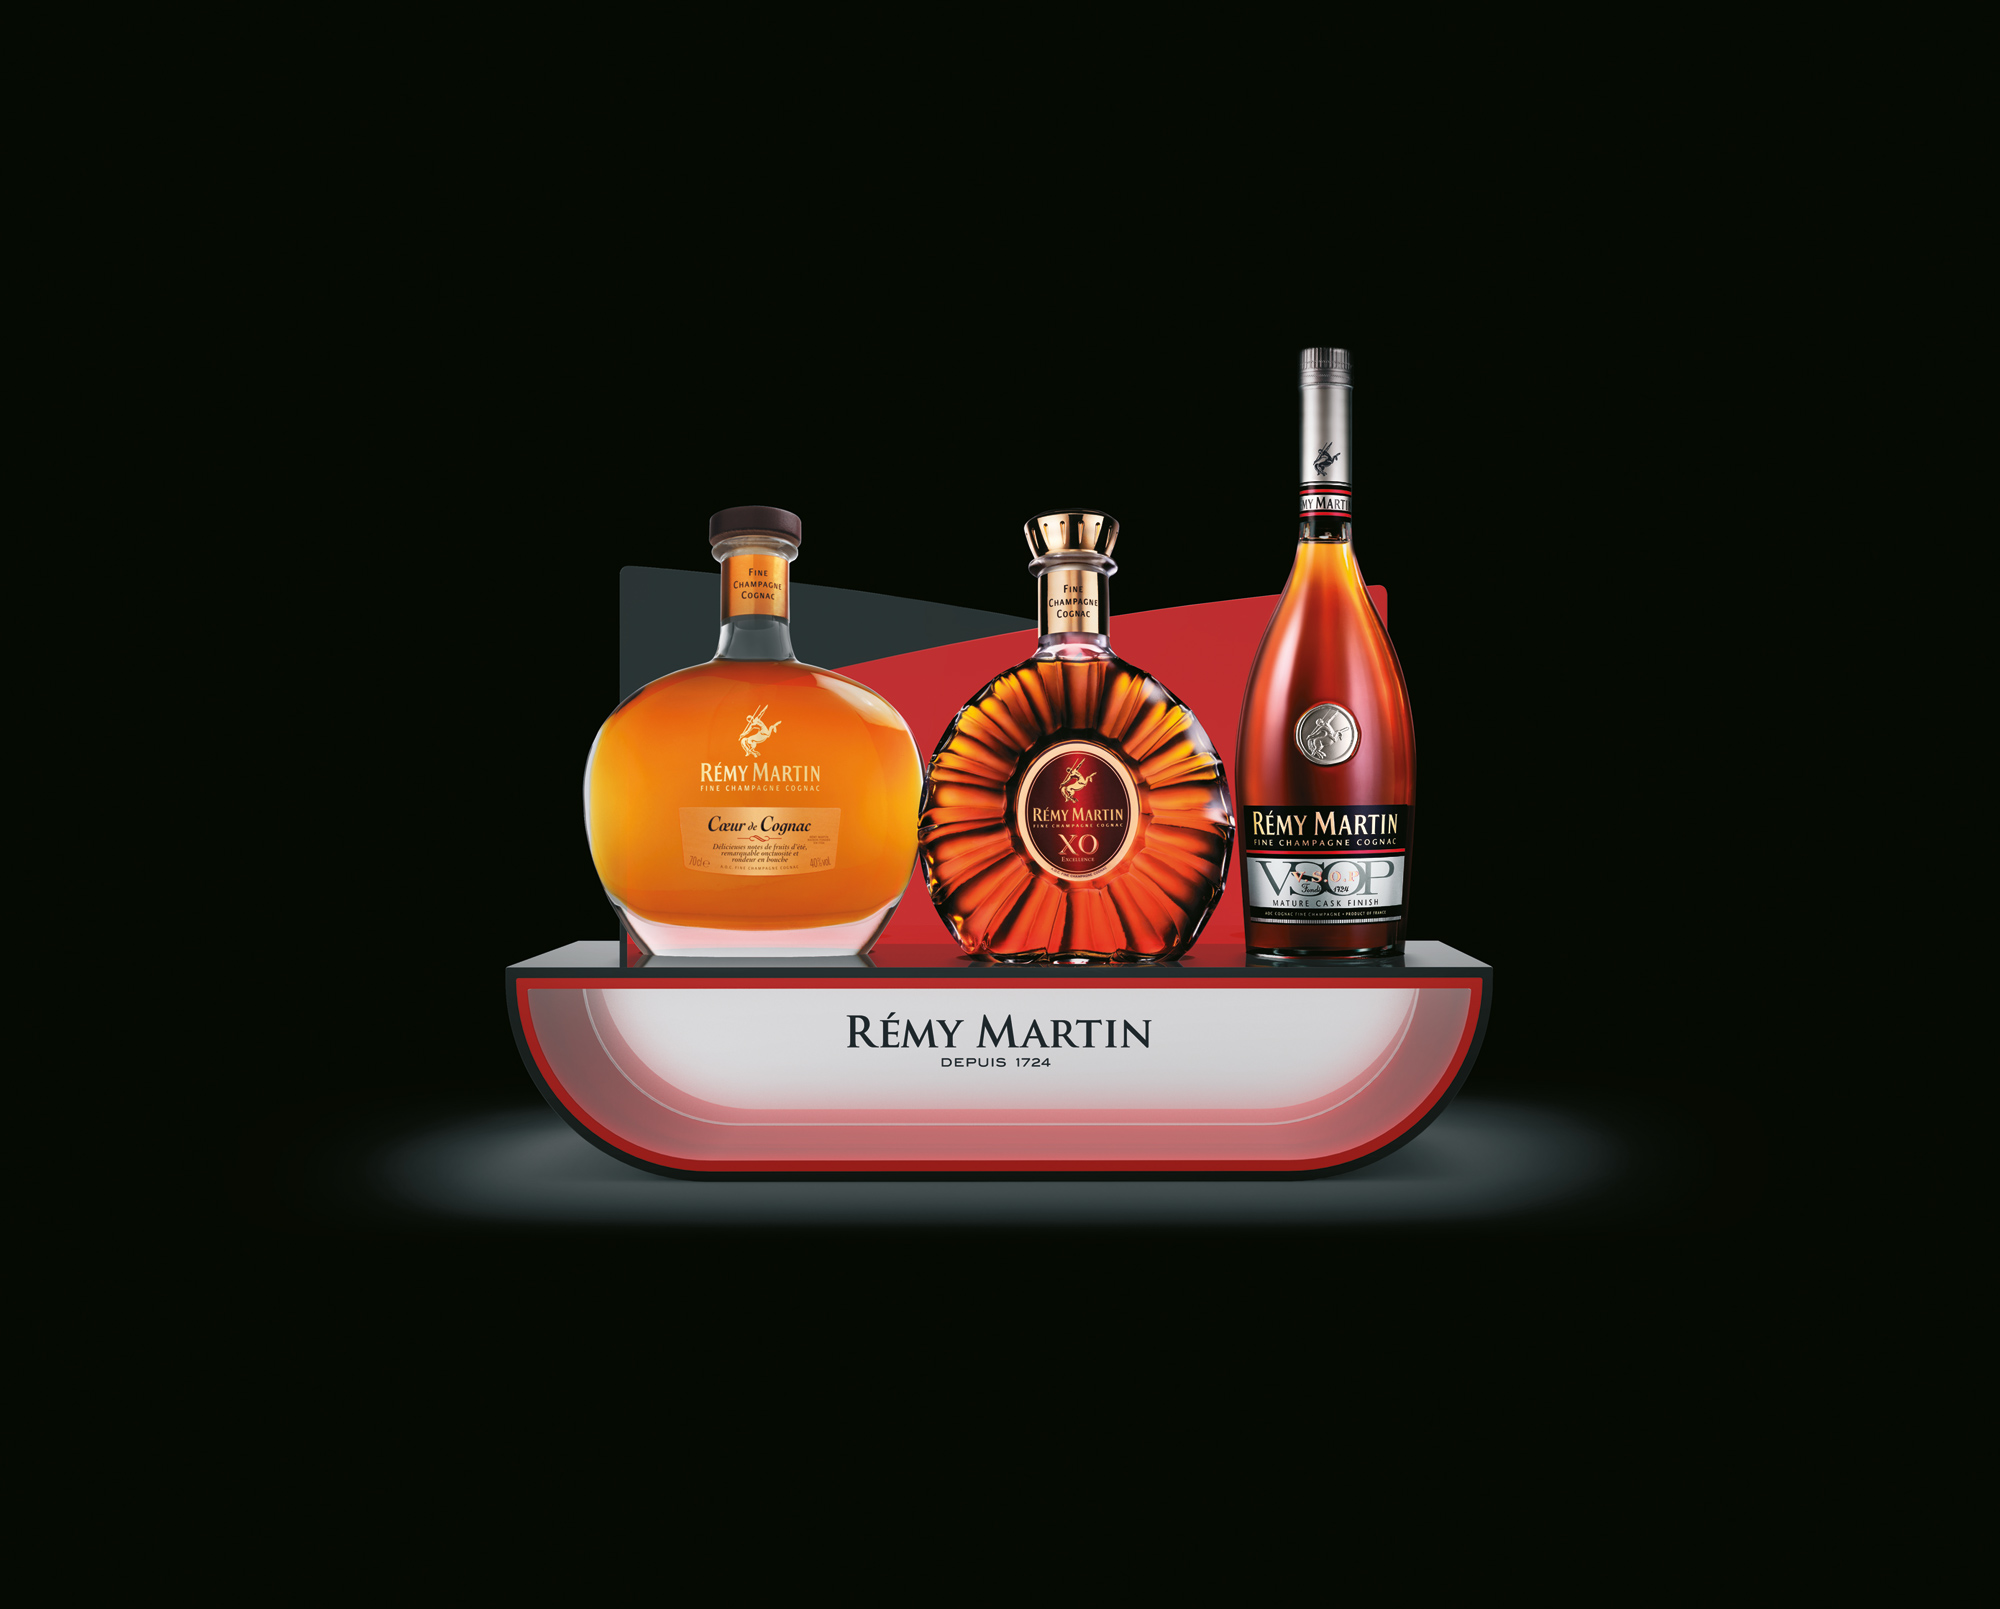 [album/Products_Model_Product/63/remy_martin_3D.jpg]